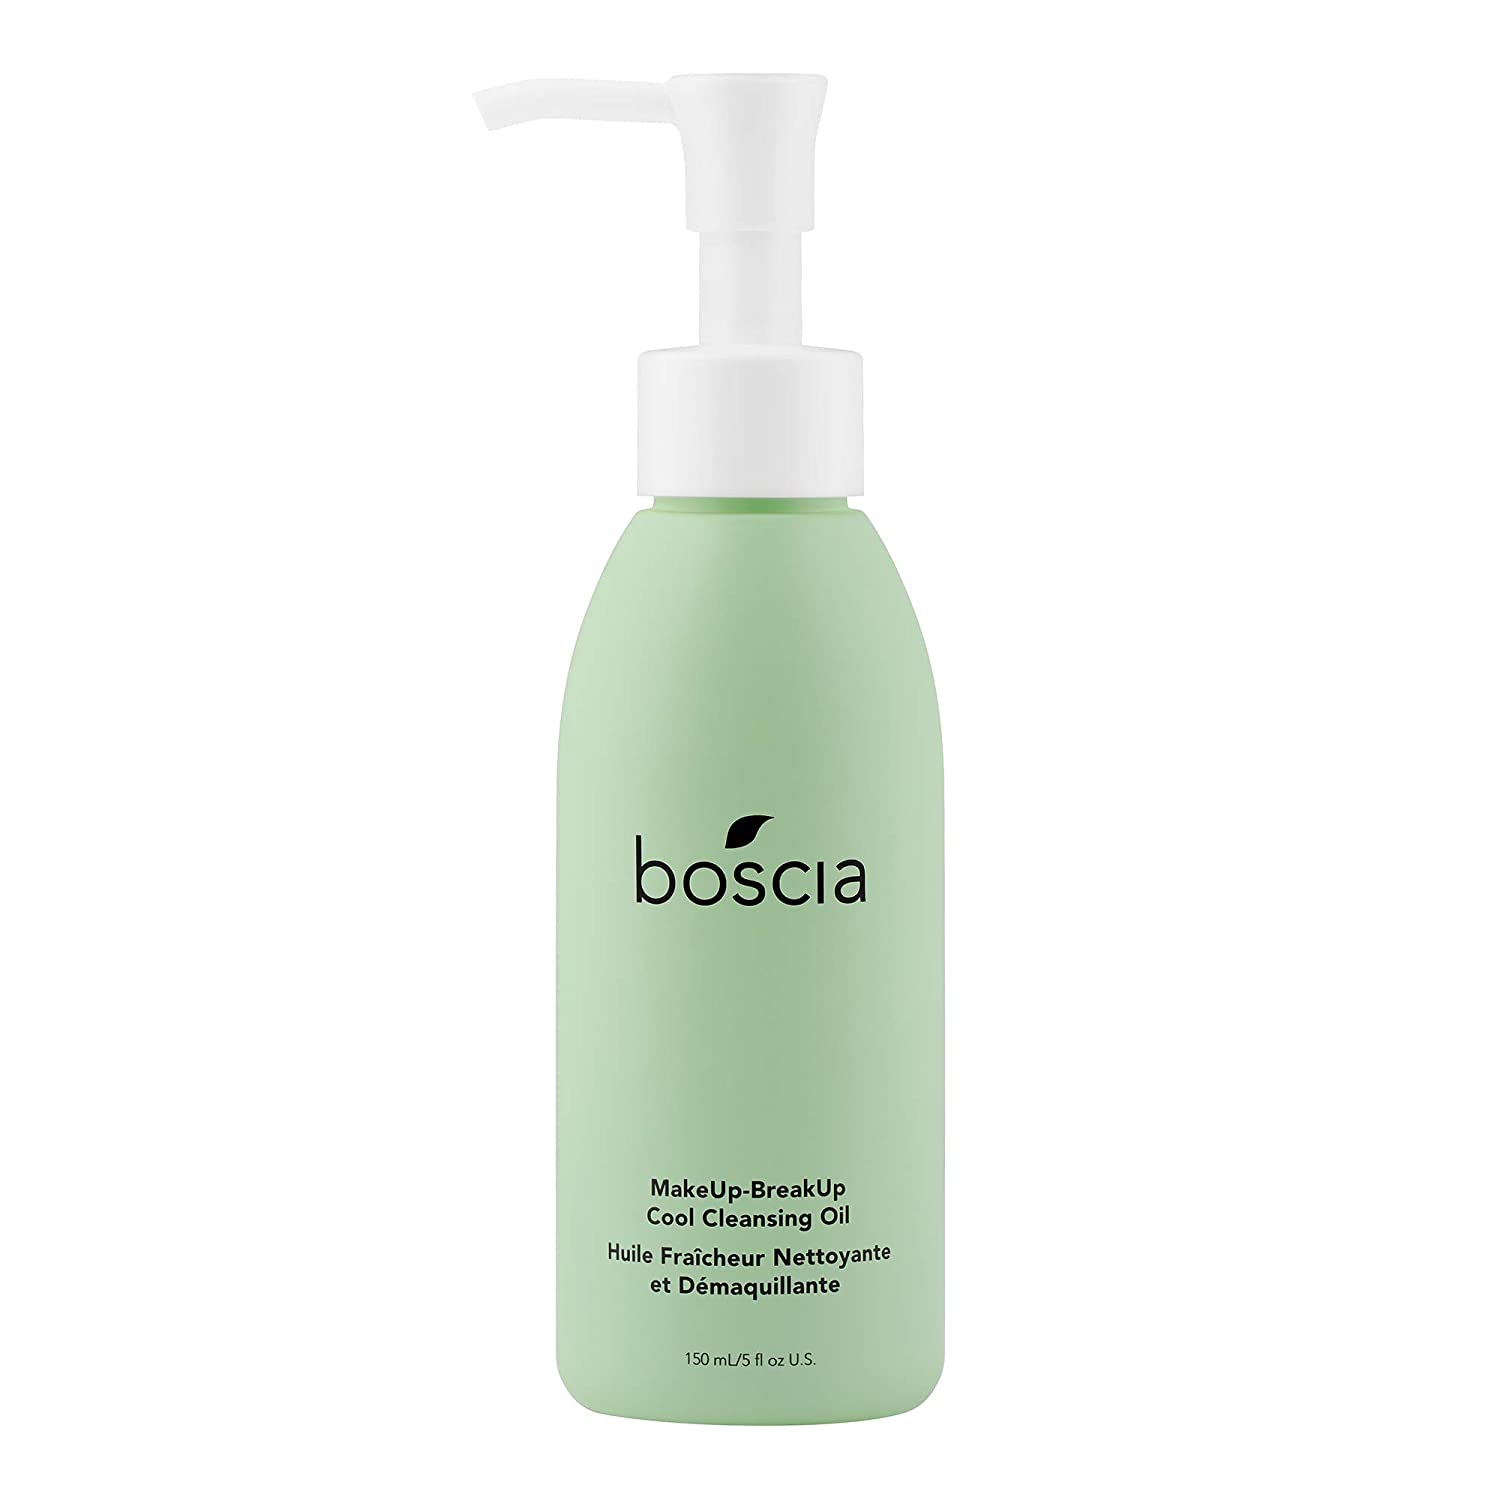 boscia MakeUp-BreakUp Cool Cleansing Oil – Natural Oil-Based MakeUp Remover